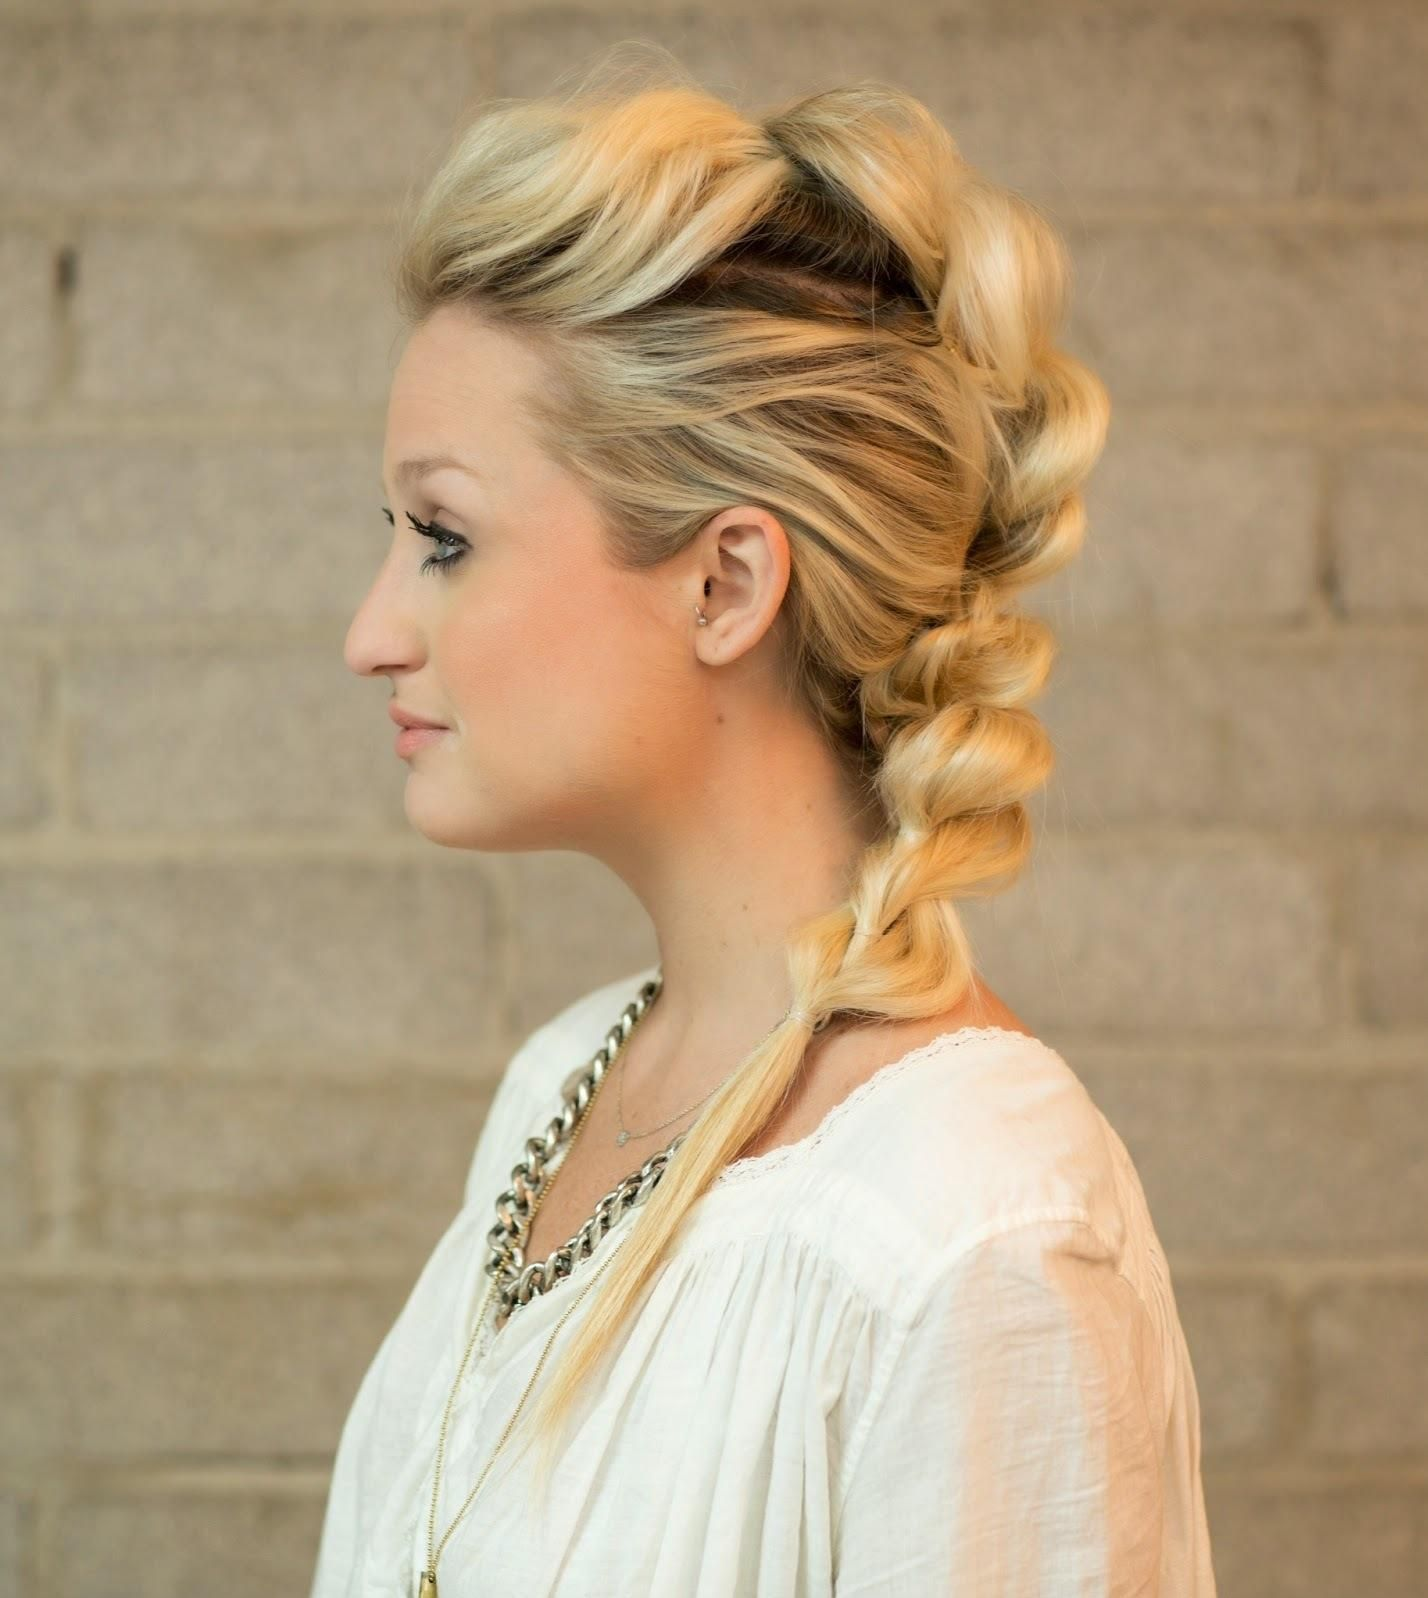 Prom Hairstyles that Will Help You Dazzle on the Dance Floor